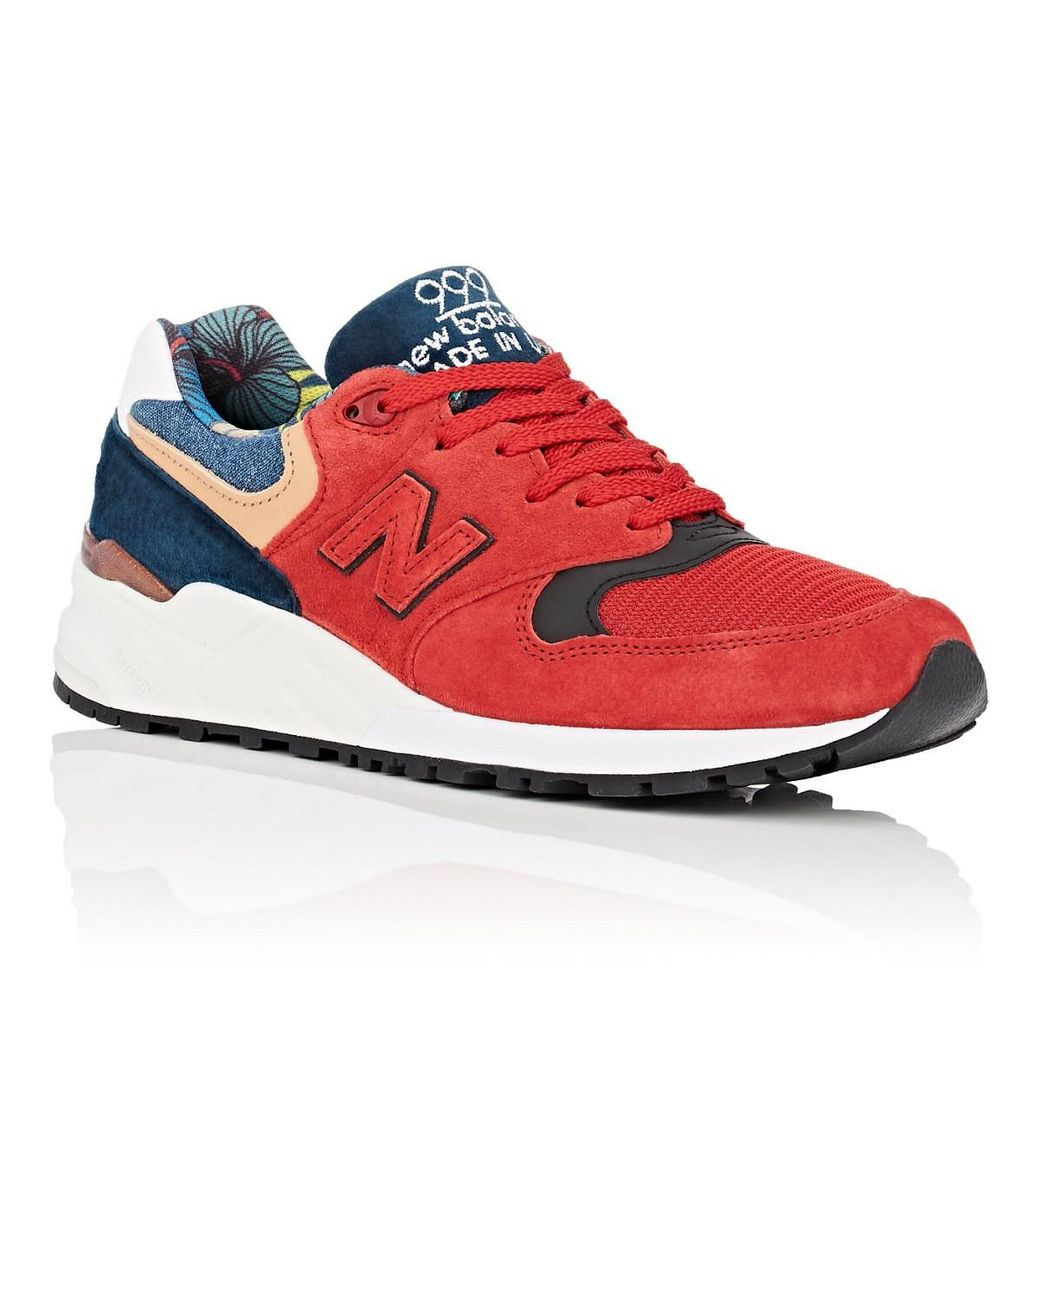 online retailer 72877 d6ef7 New Balance 999 Suede Sneakers in Red for Men - Lyst